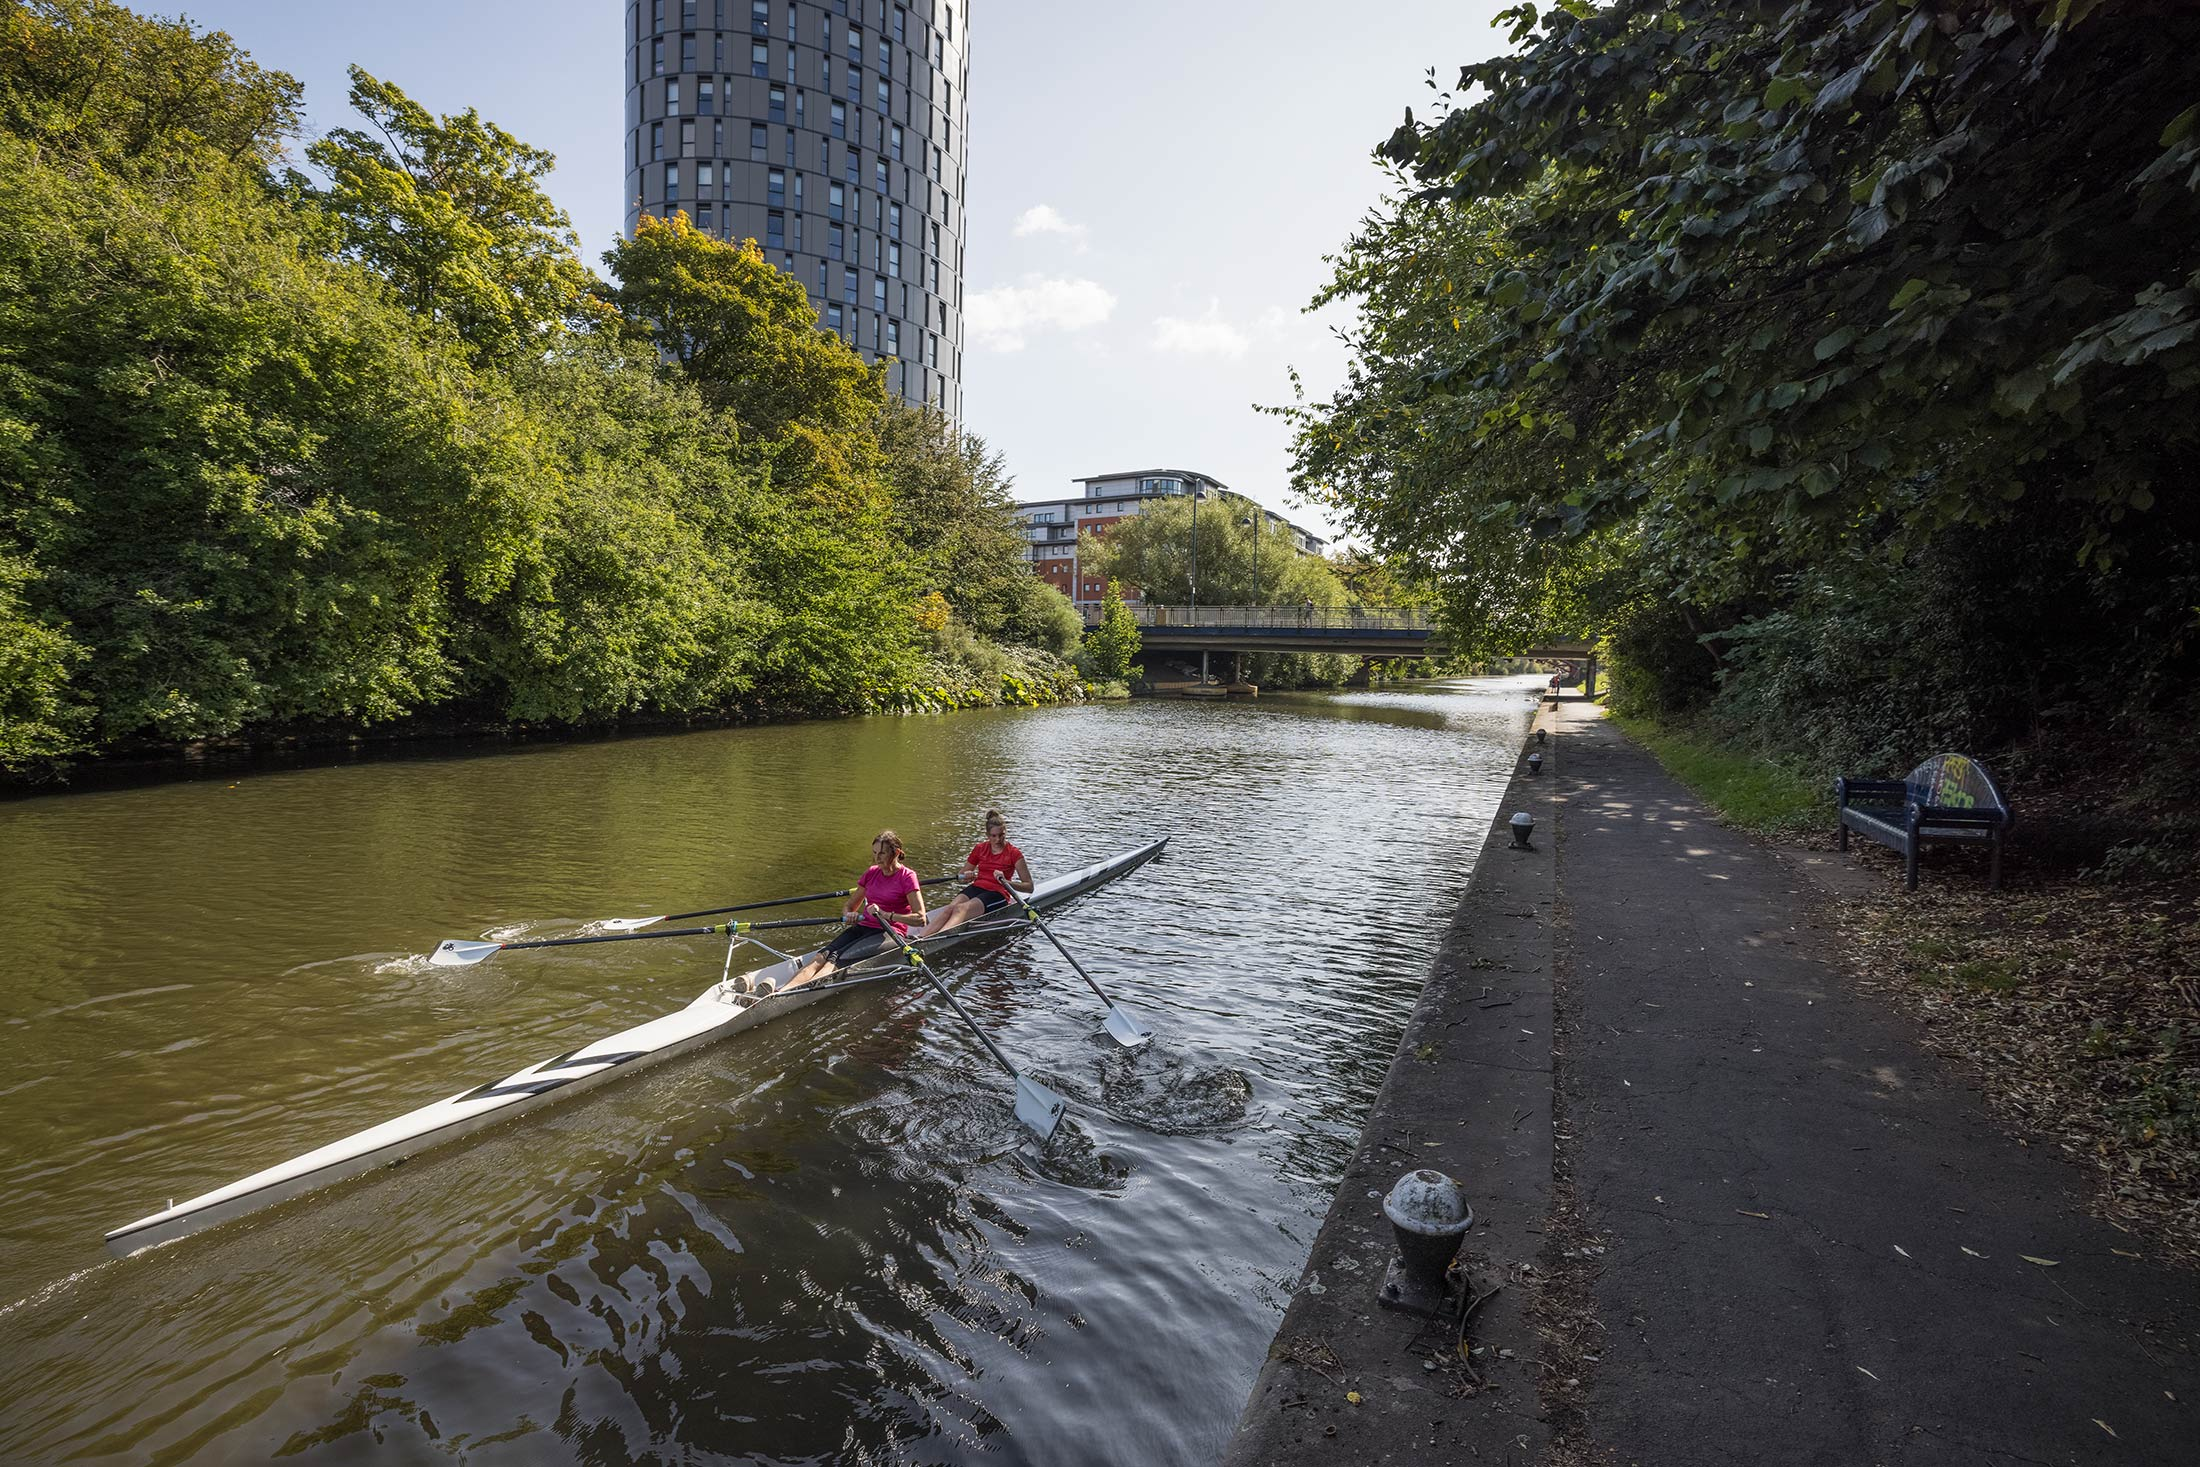 rowers 17mm-15-35